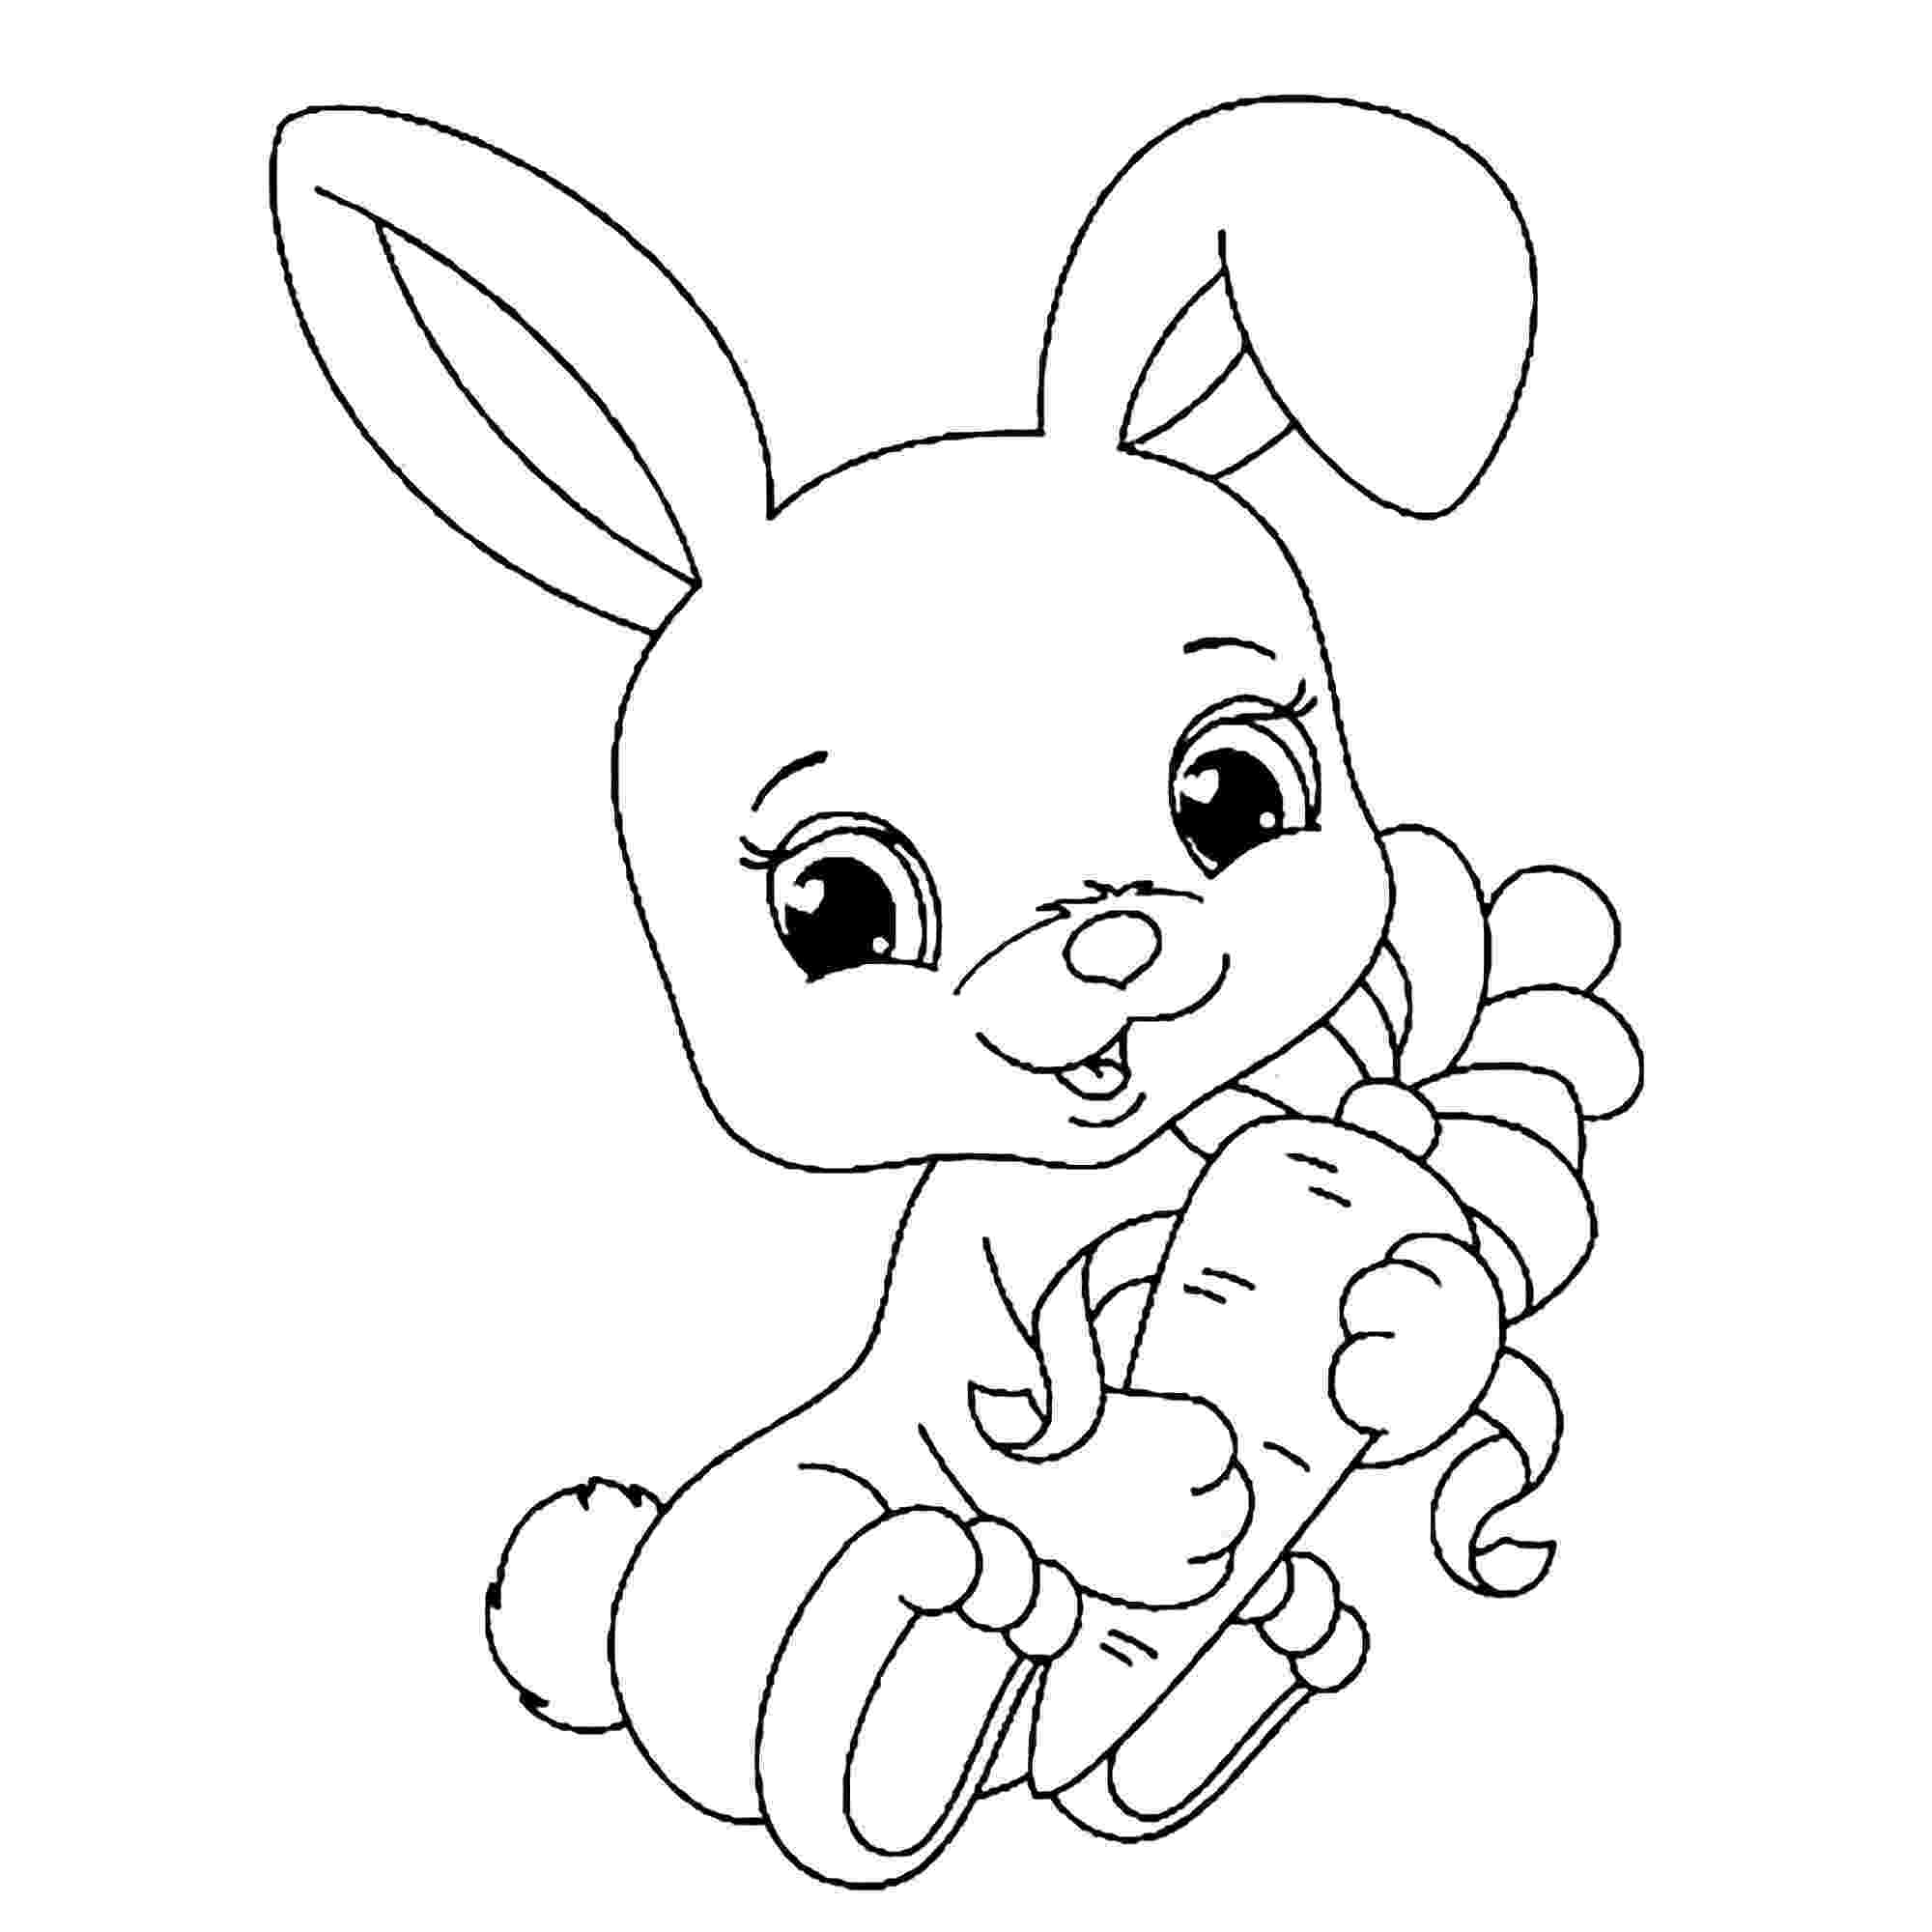 rabbit coloring pages for preschoolers preschool letter r on pinterest preschool rainbows and preschoolers pages for coloring rabbit